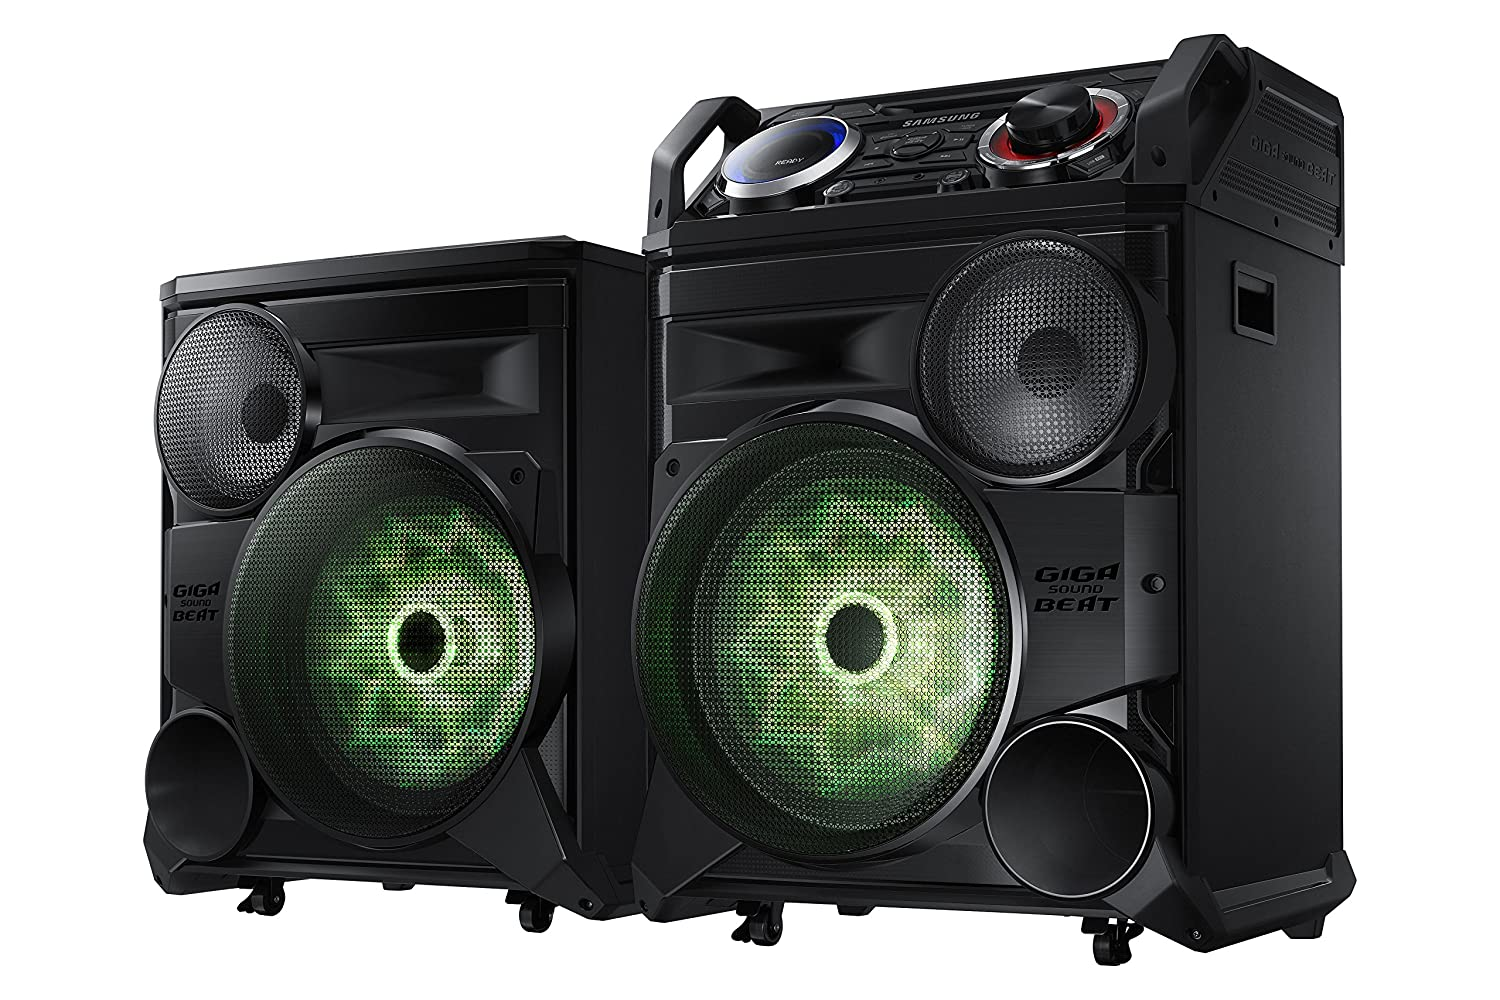 sound system amazon. samsung mx-hs8500 giga sound system price: buy online in india -amazon.in amazon